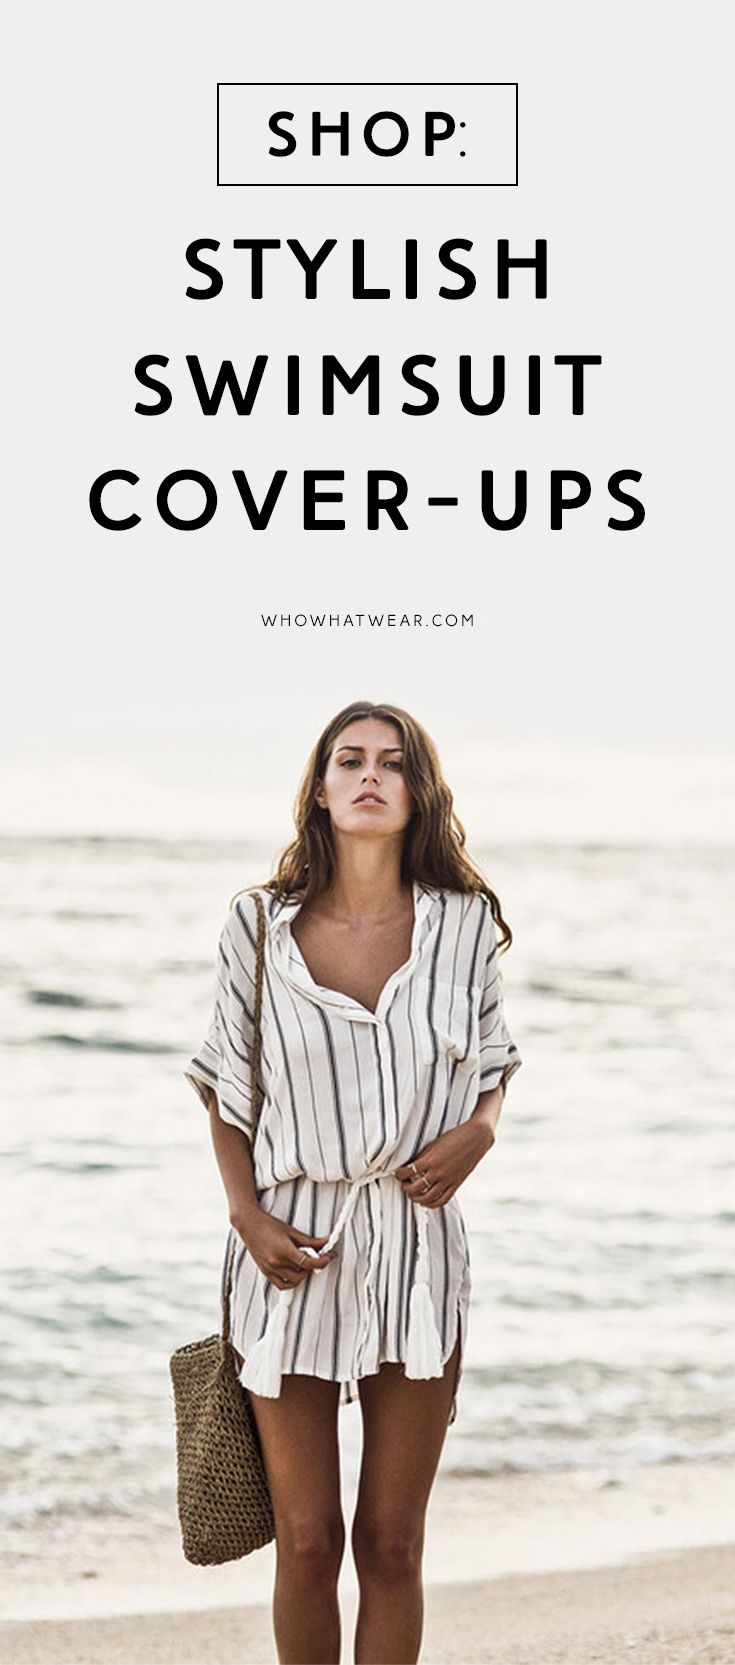 10 Swimsuit Cover-Ups You Won't Want to Take Off